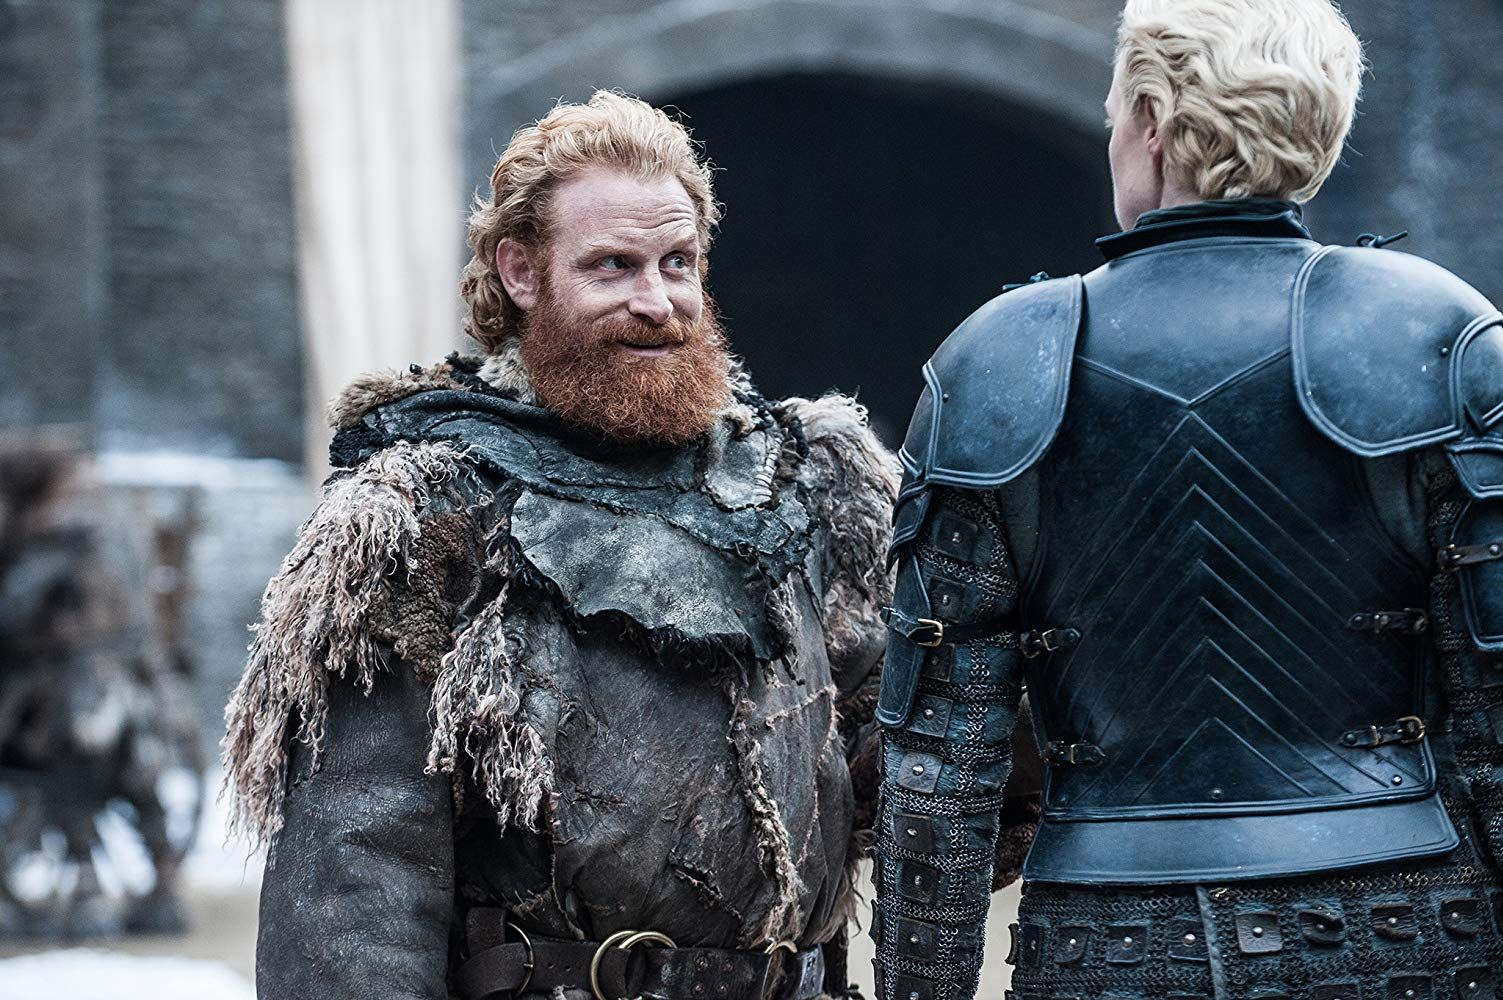 Why You Missed Out on Seeing More of Tormund and Brienne on 'Game of Thrones'